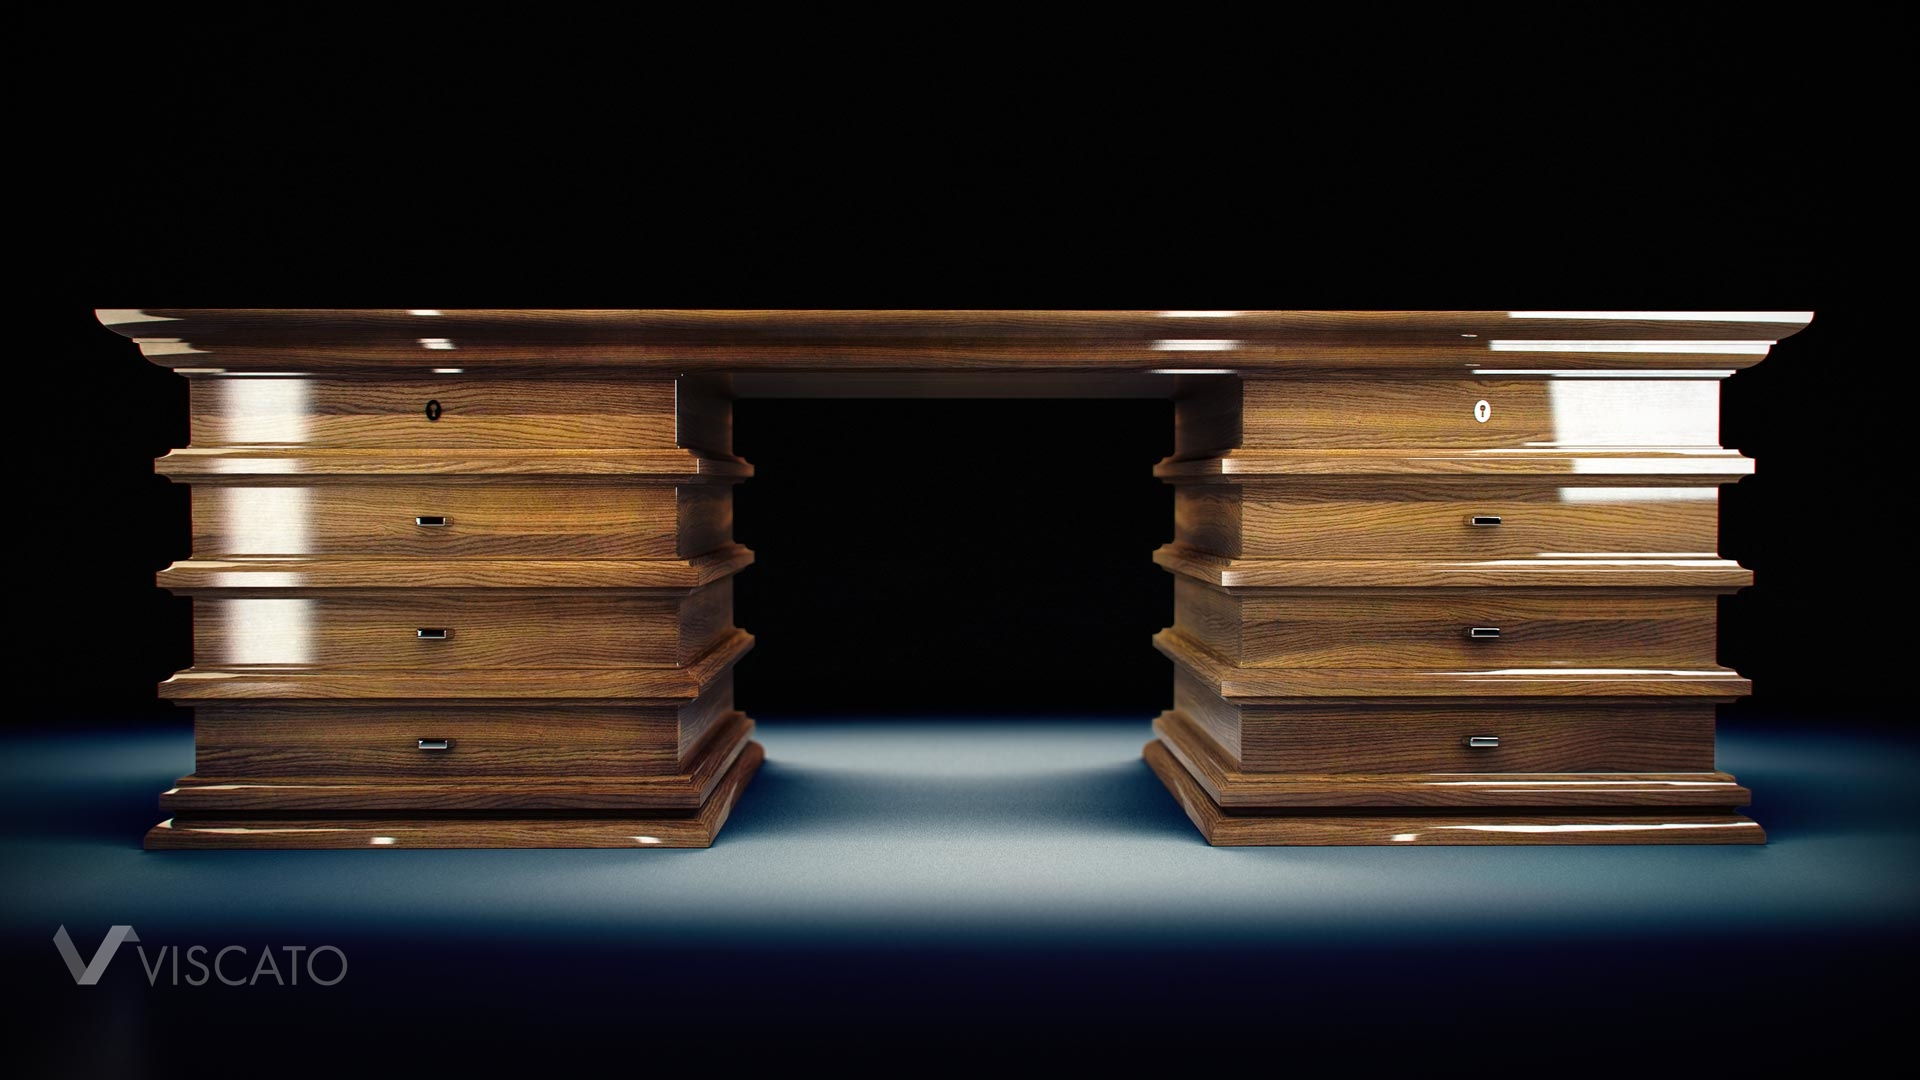 Wooden desk 3d visualization in dark blue studio - view from front.